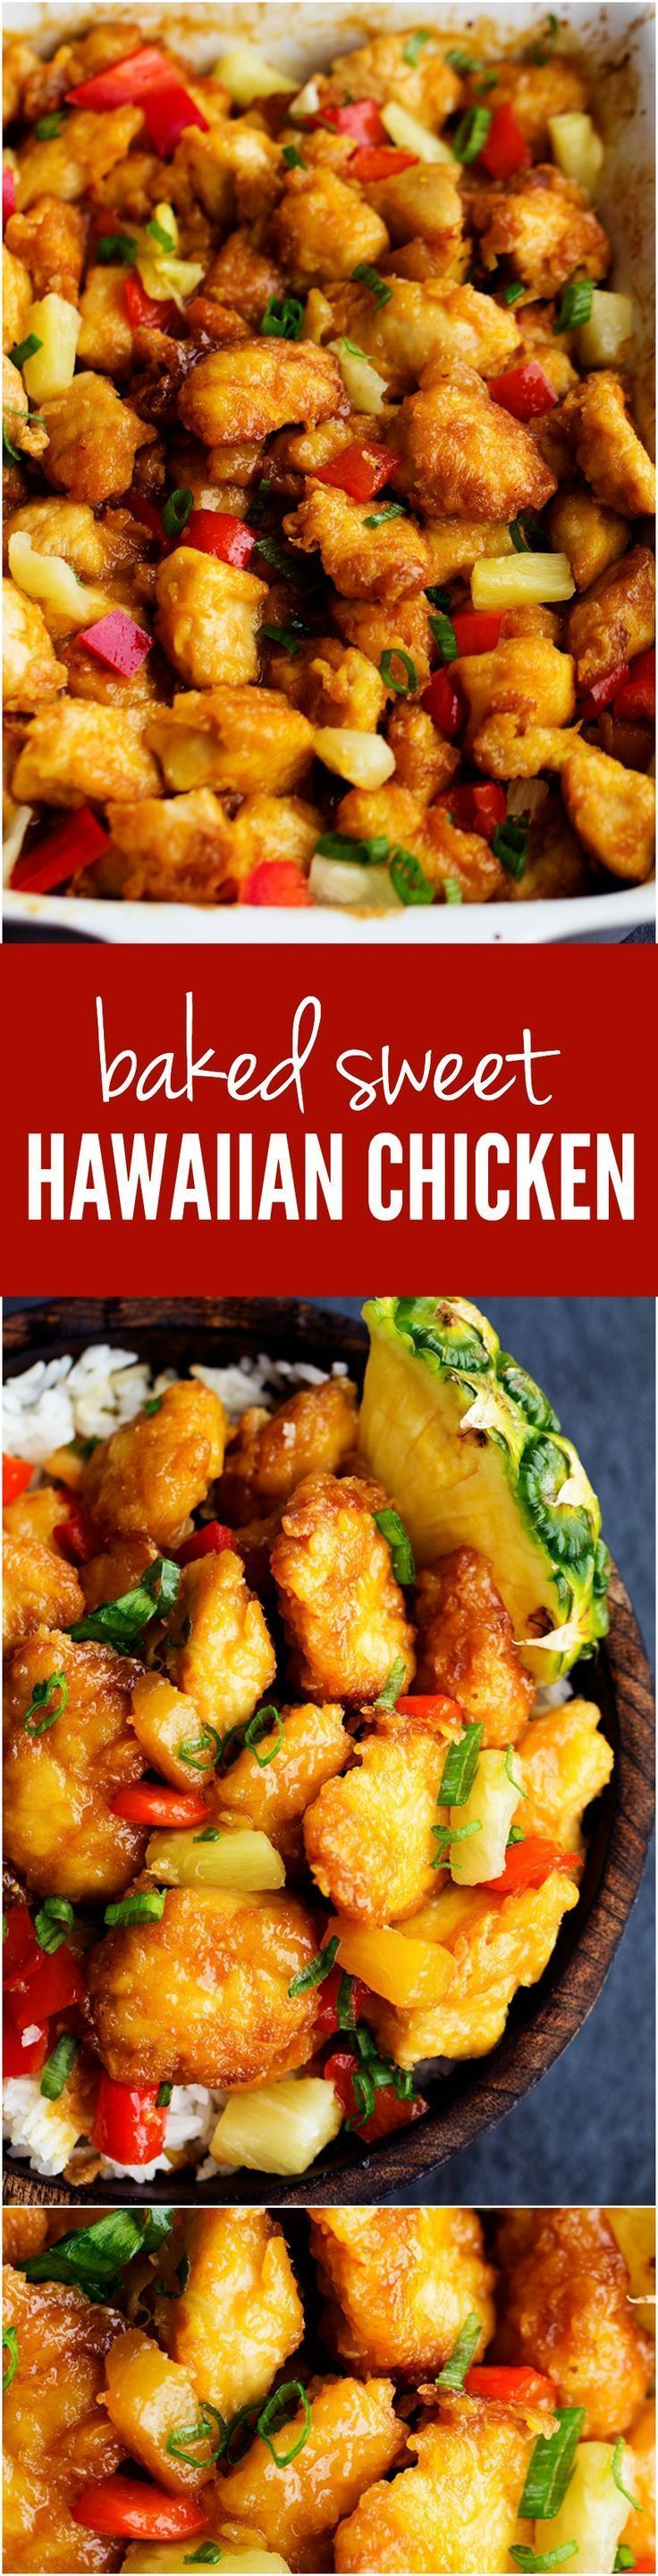 Baked Sweet Hawaiian Chicken